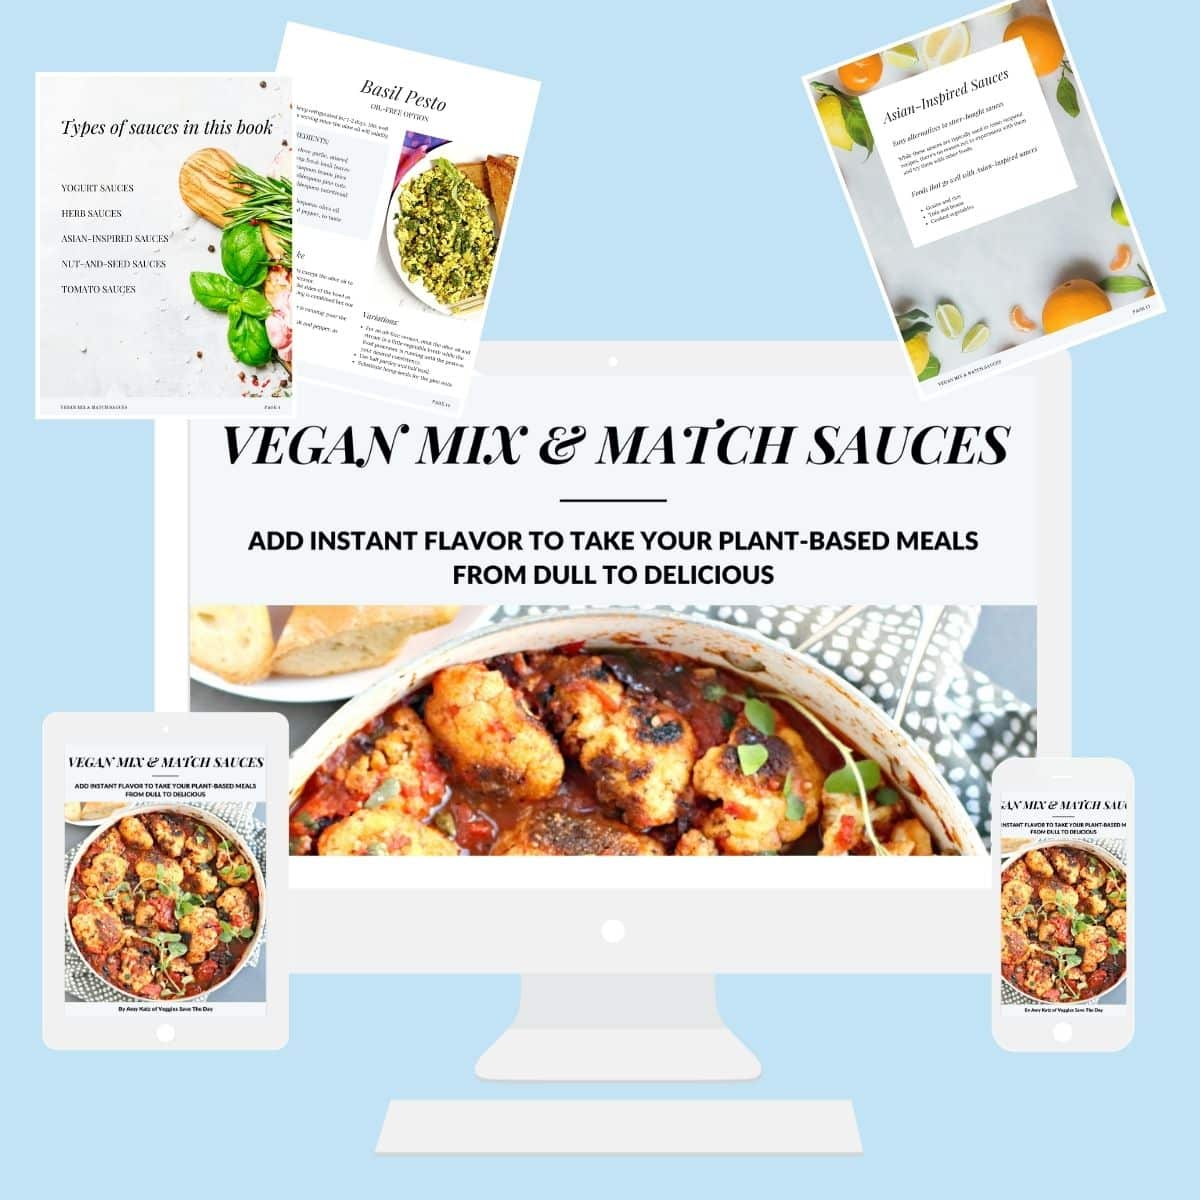 Images from Vegan Mix & Match Sauces on a computer, tablet, and smartphone